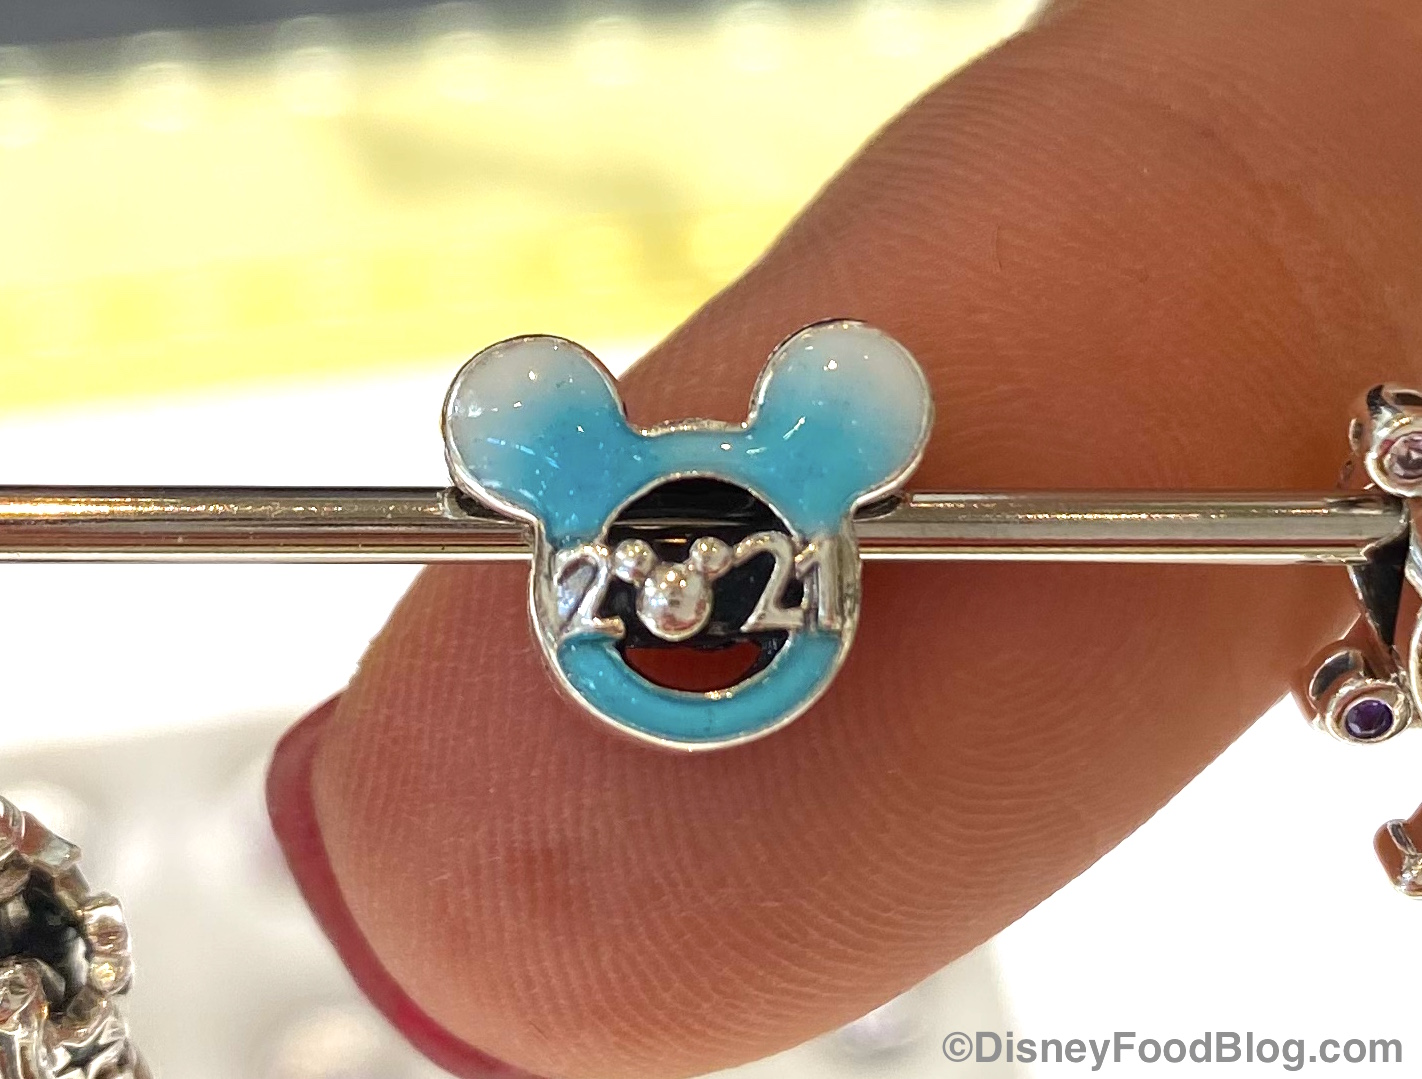 Ring in the New Year with this 2021 Pandora Charm in Disney World ...